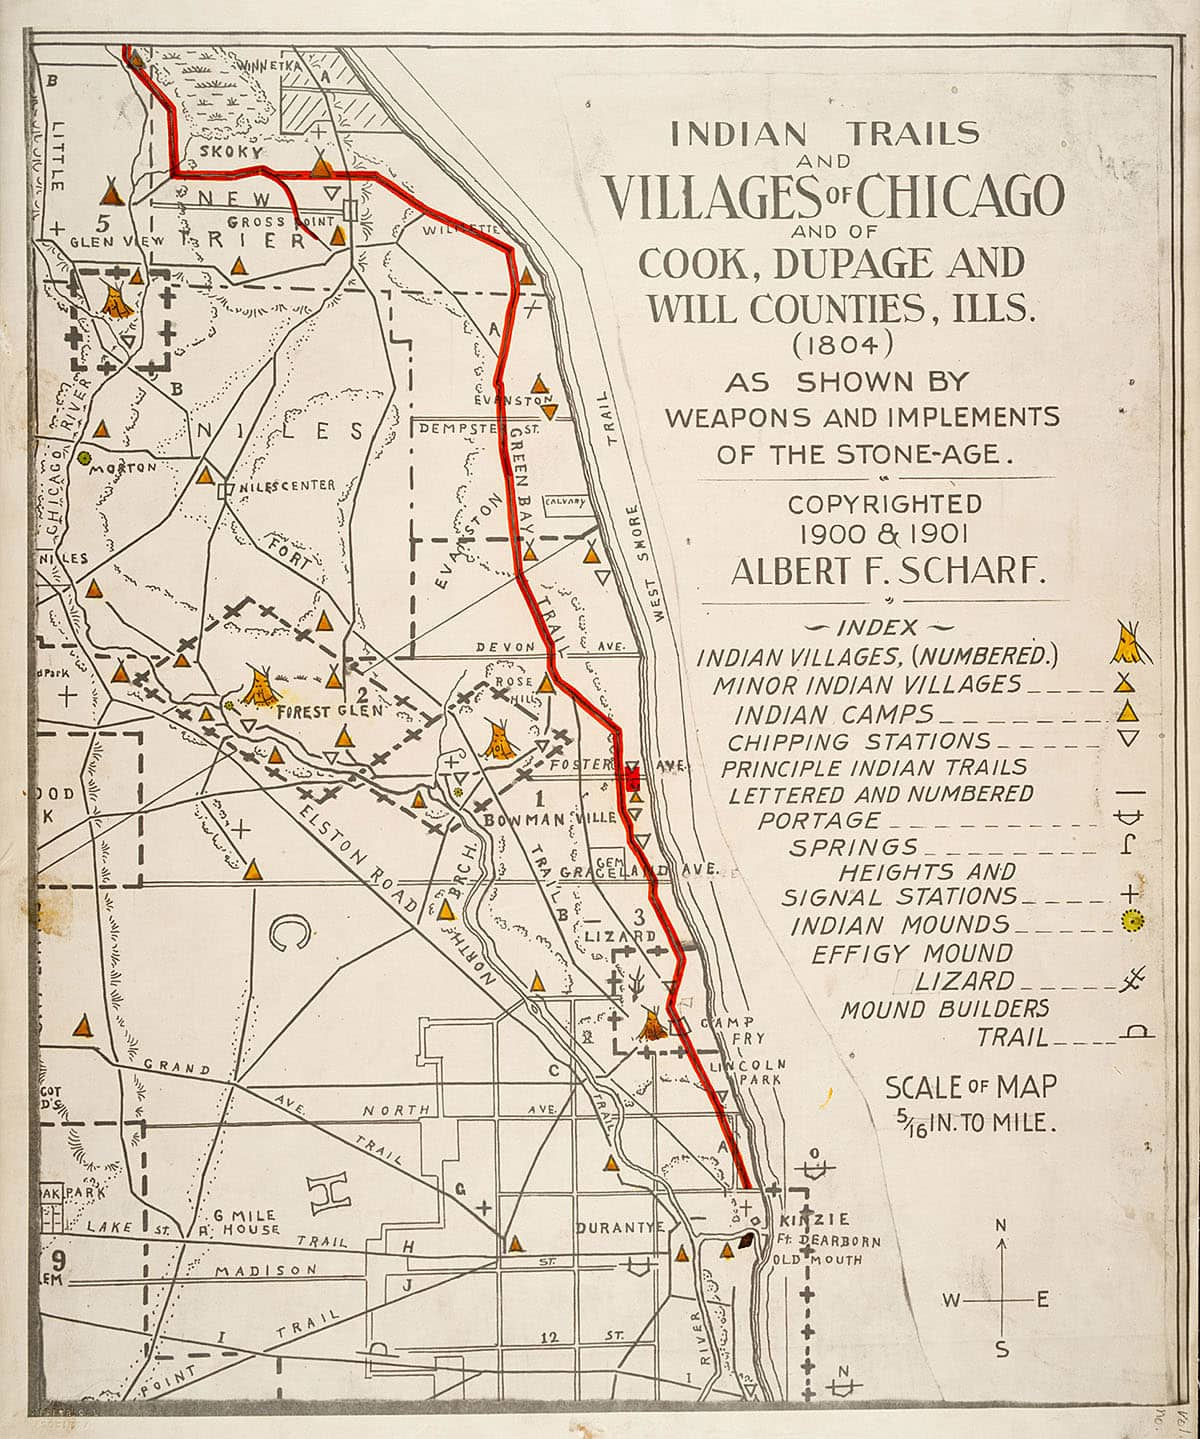 Map of Native American trails in Chicago